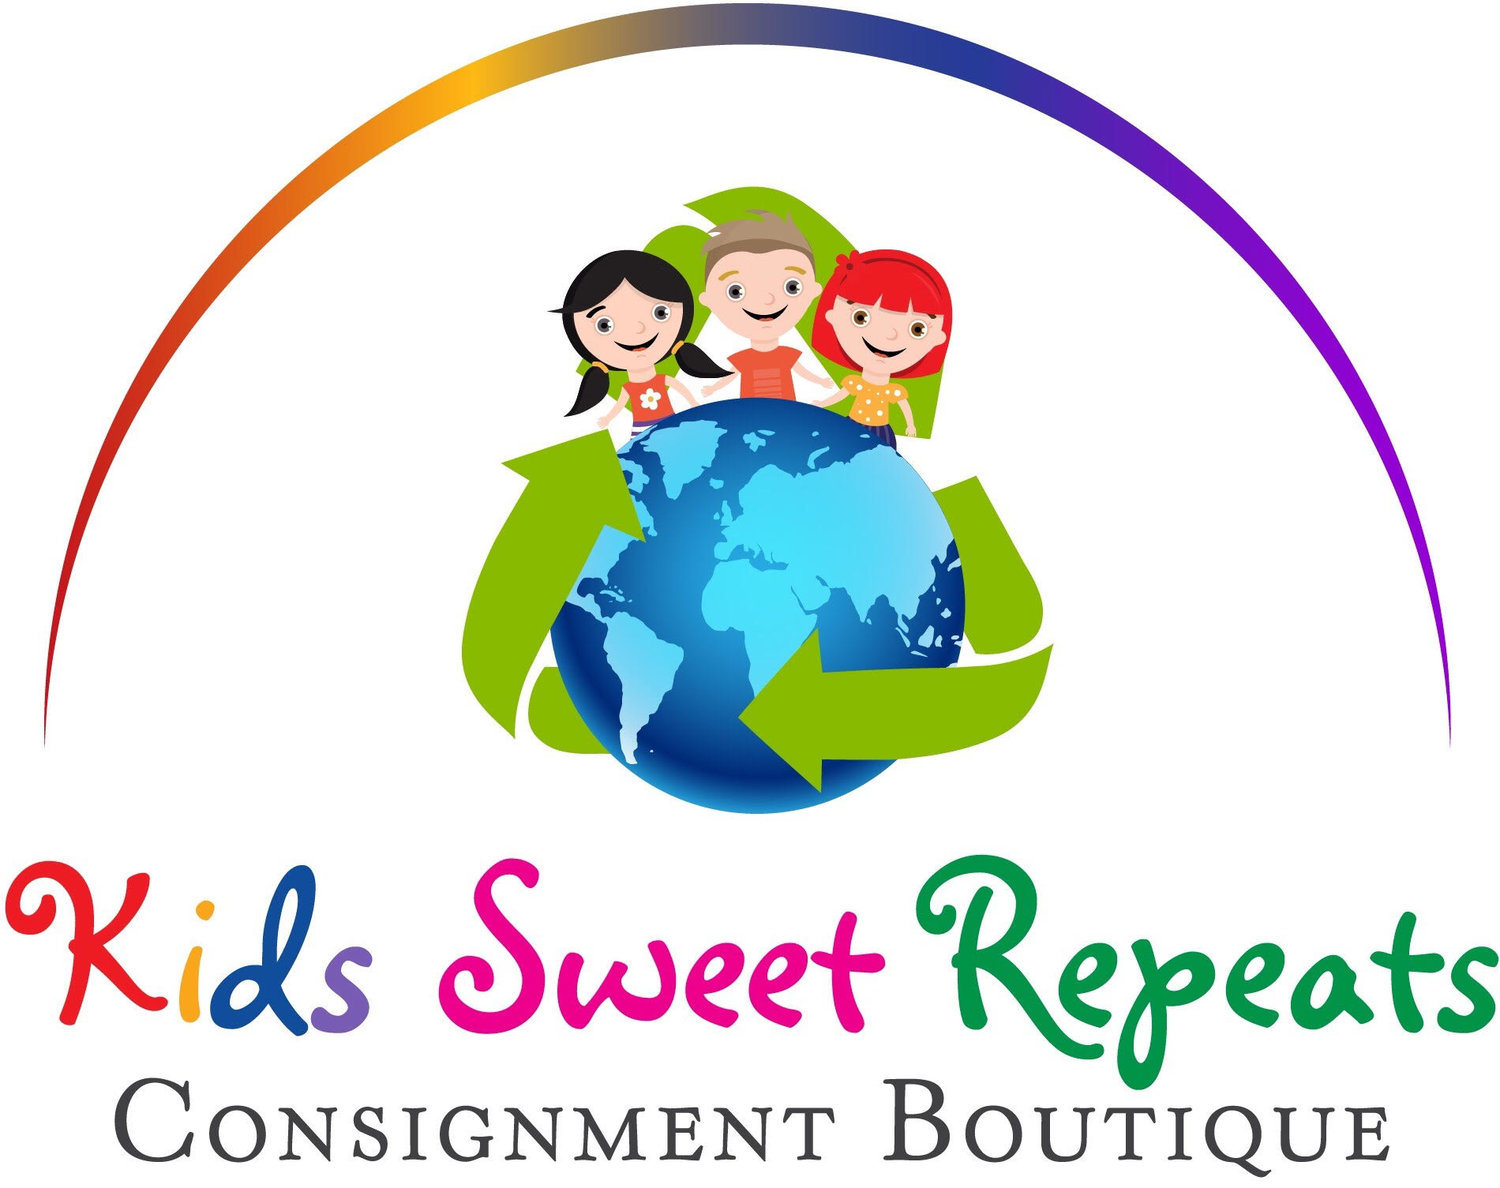 Kids Sweet Repeats Consignment Boutique